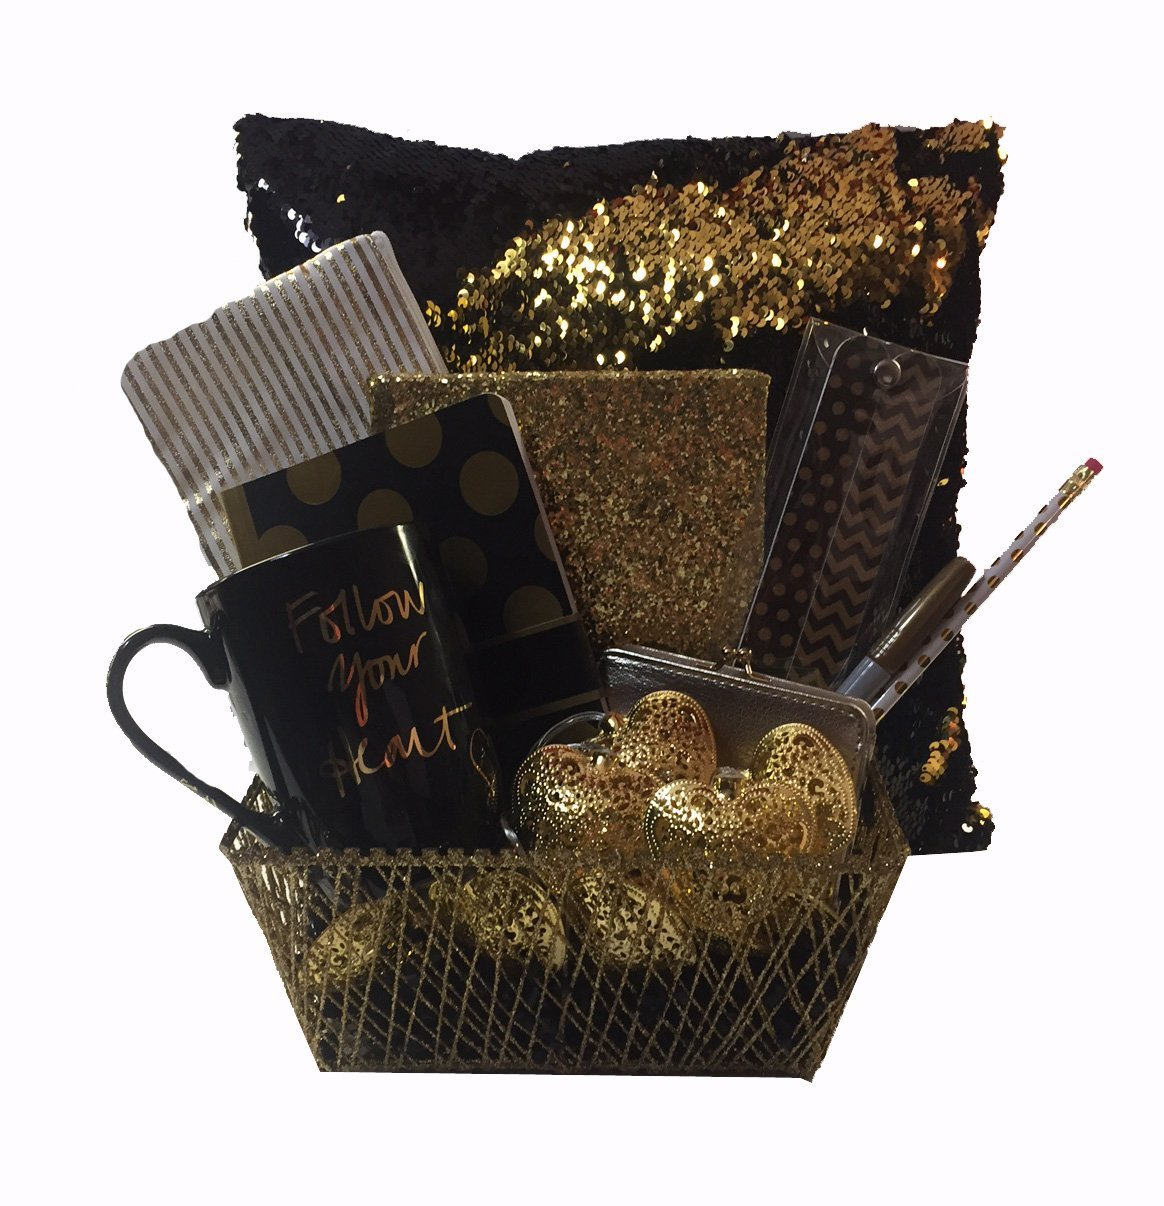 Cheap gold gift basket find gold gift basket deals on line at all that glitters is gold tween girl deluxe gift basket perfect for easter basket negle Gallery